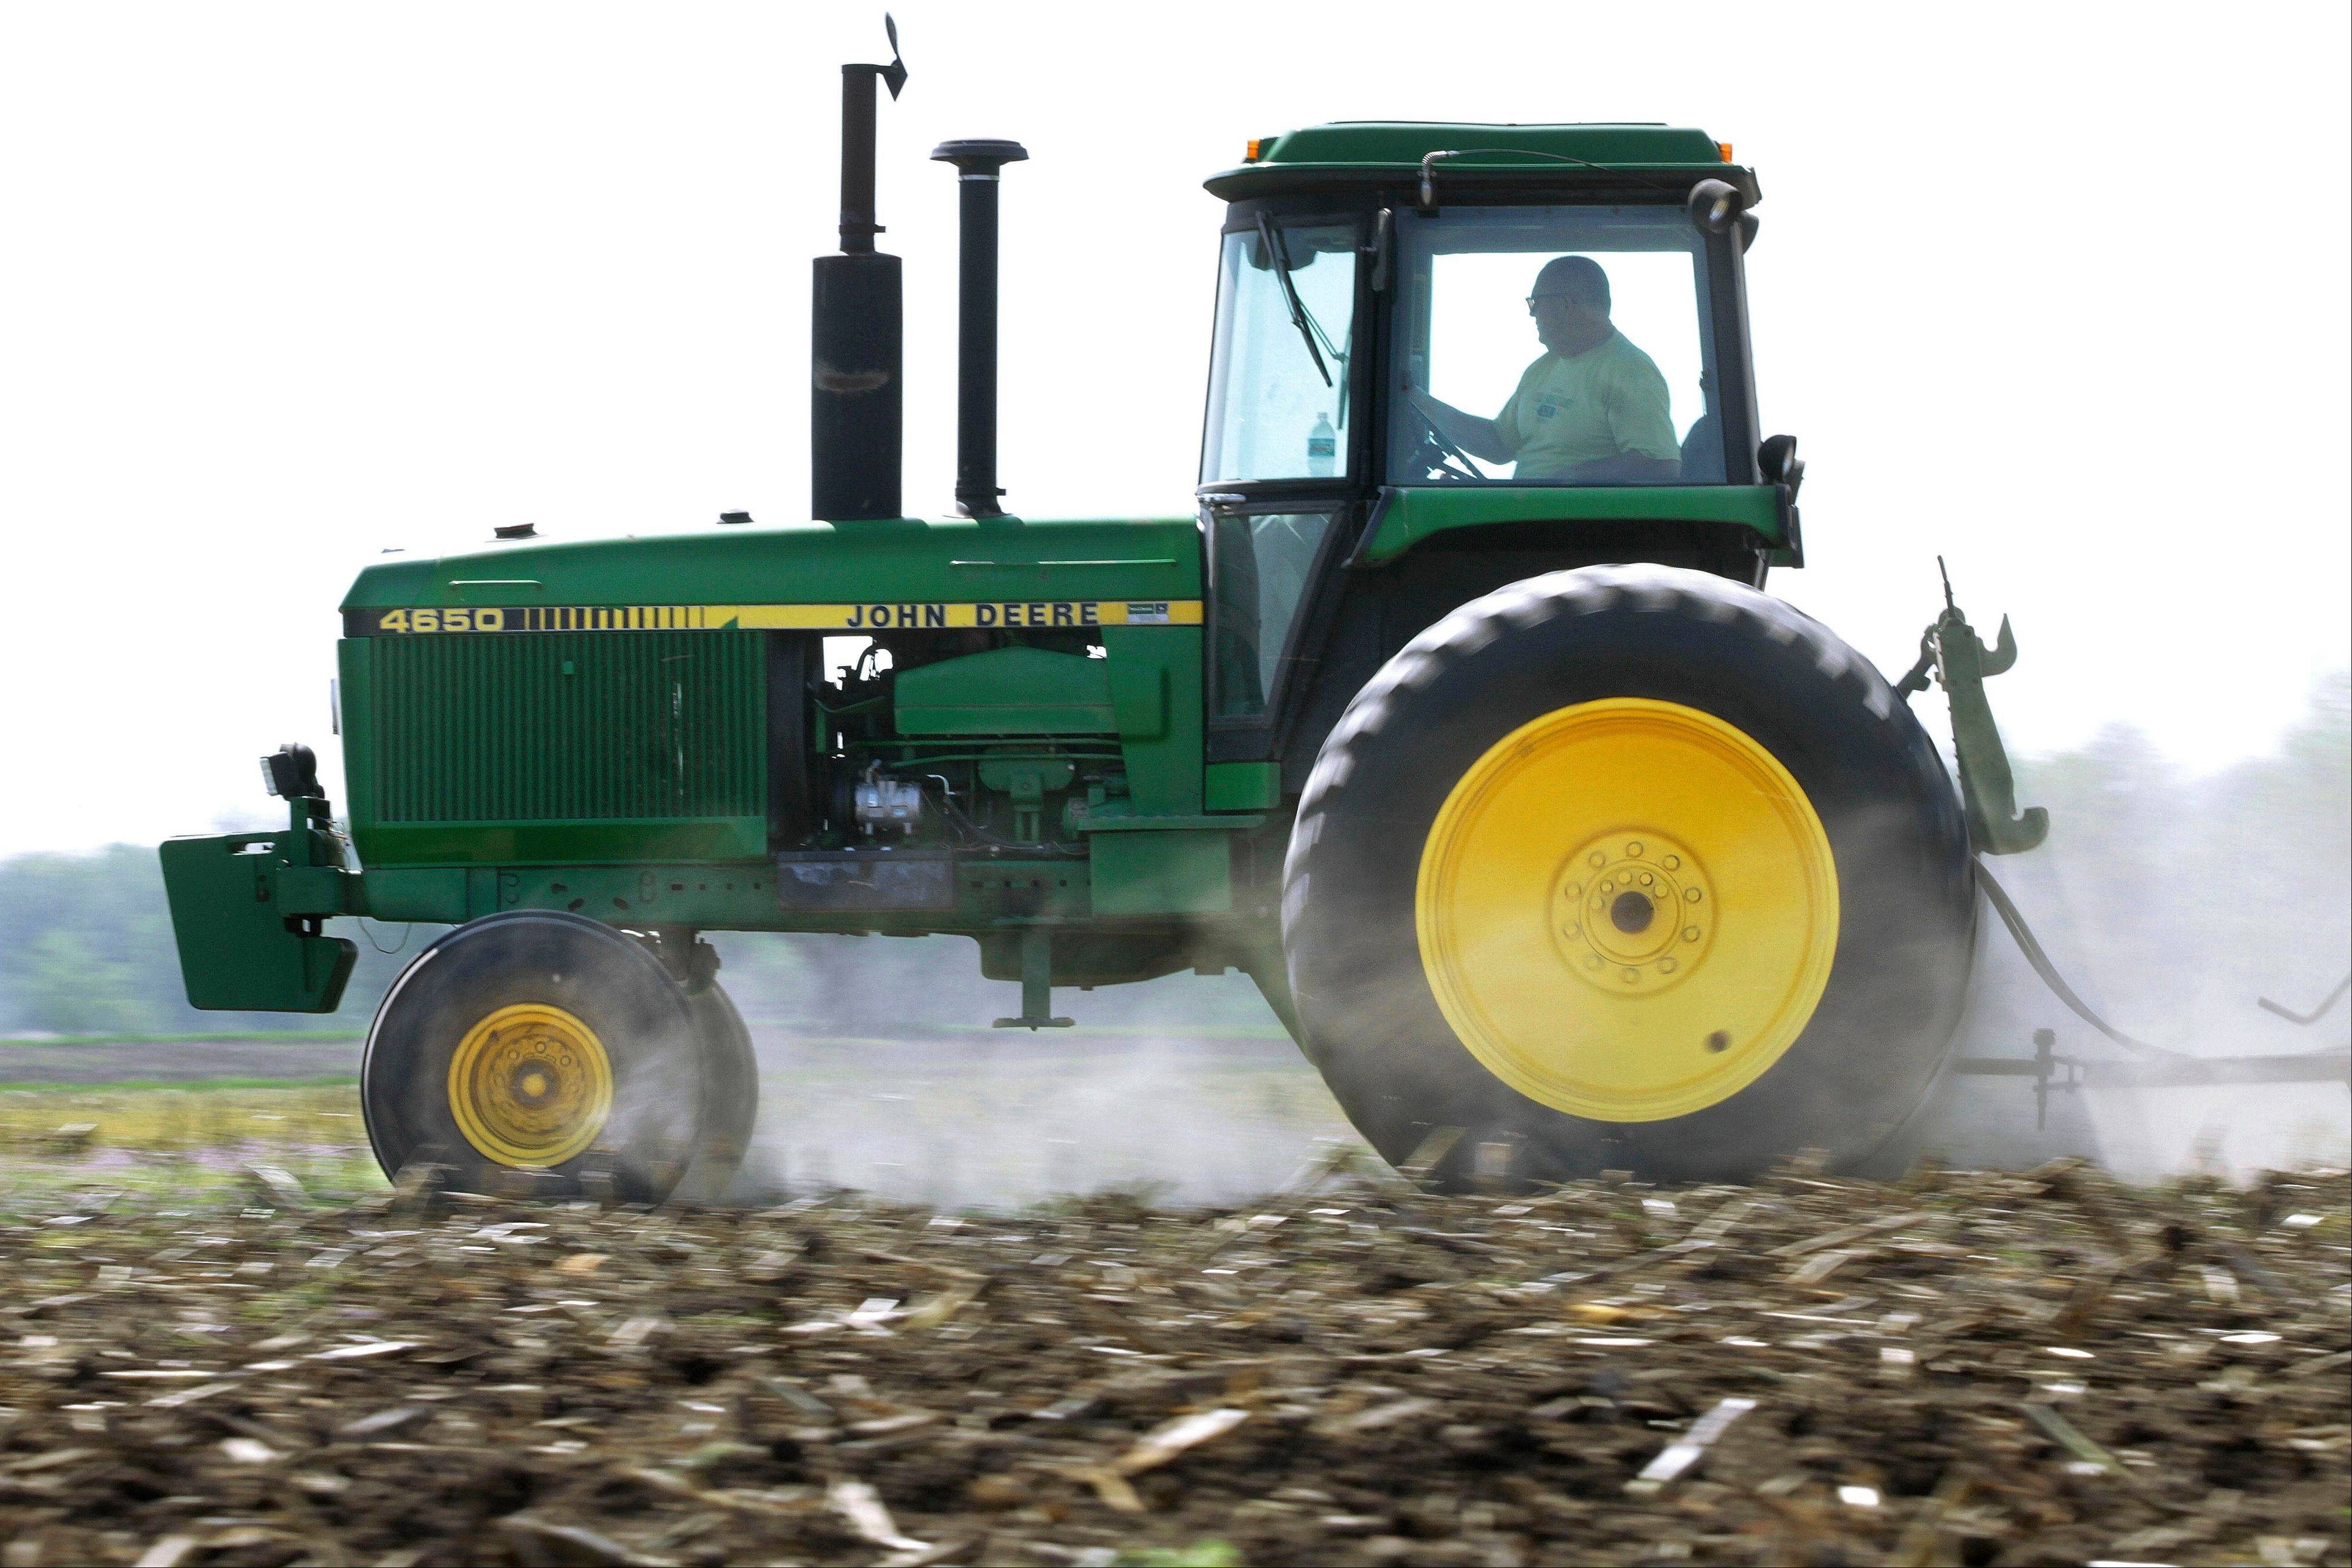 Derek Long uses a John Deere tractor to disk and cultivate a field in preparation for planting corn in Loami, Ill. Deere's third-quarter net income rose 27 percent,